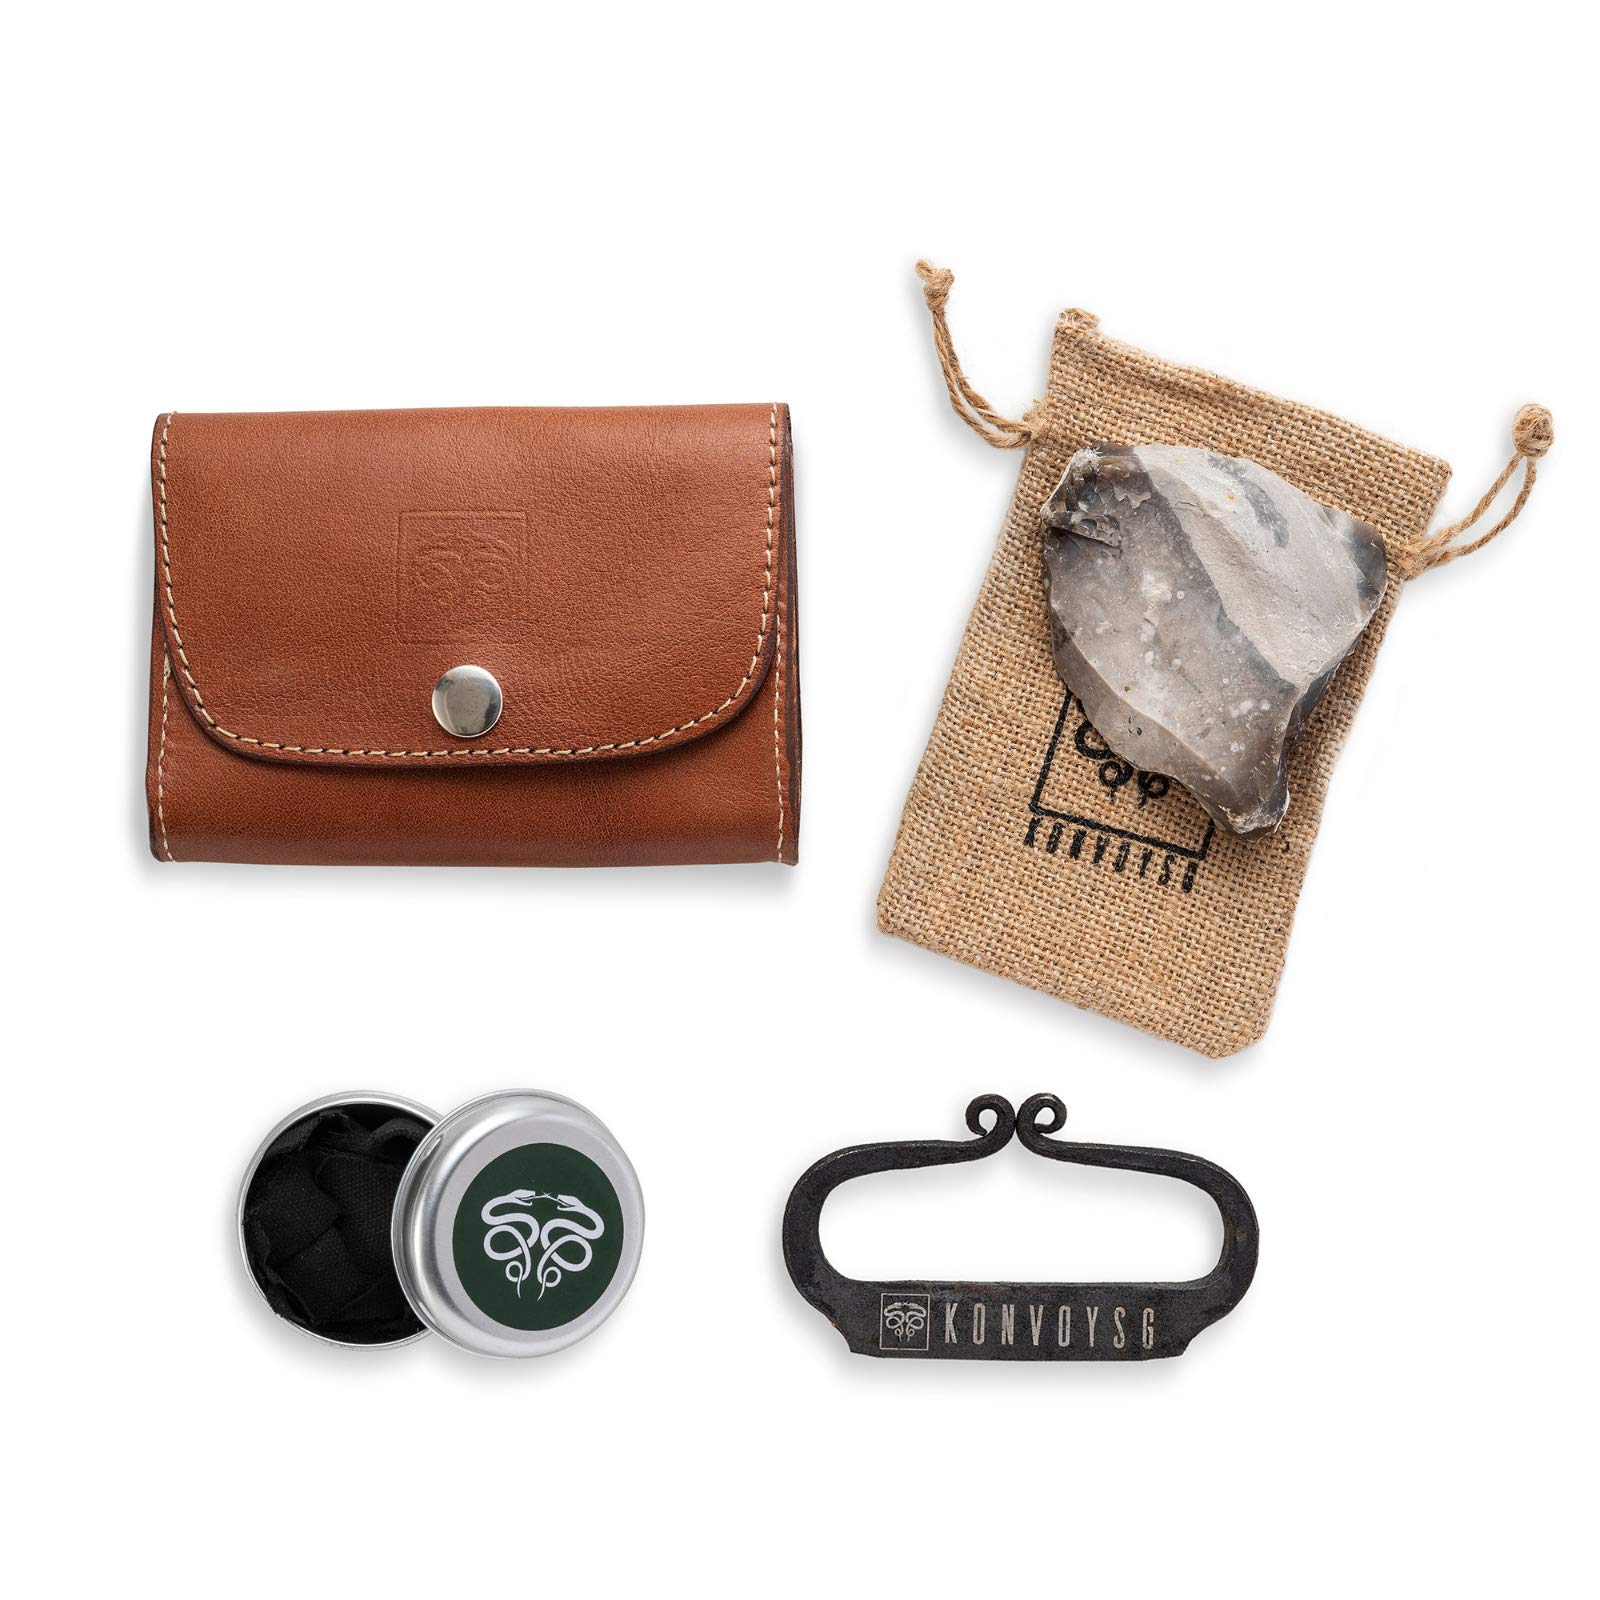 KonvoySG Flint and Steel Kit. Fire Striker, English Flint Stone & Char Cloth Traditional Hand Forged Fire Starter with a Leather Gift Pouch and Emergency Tinder Jute Bag (Coyote Brown)